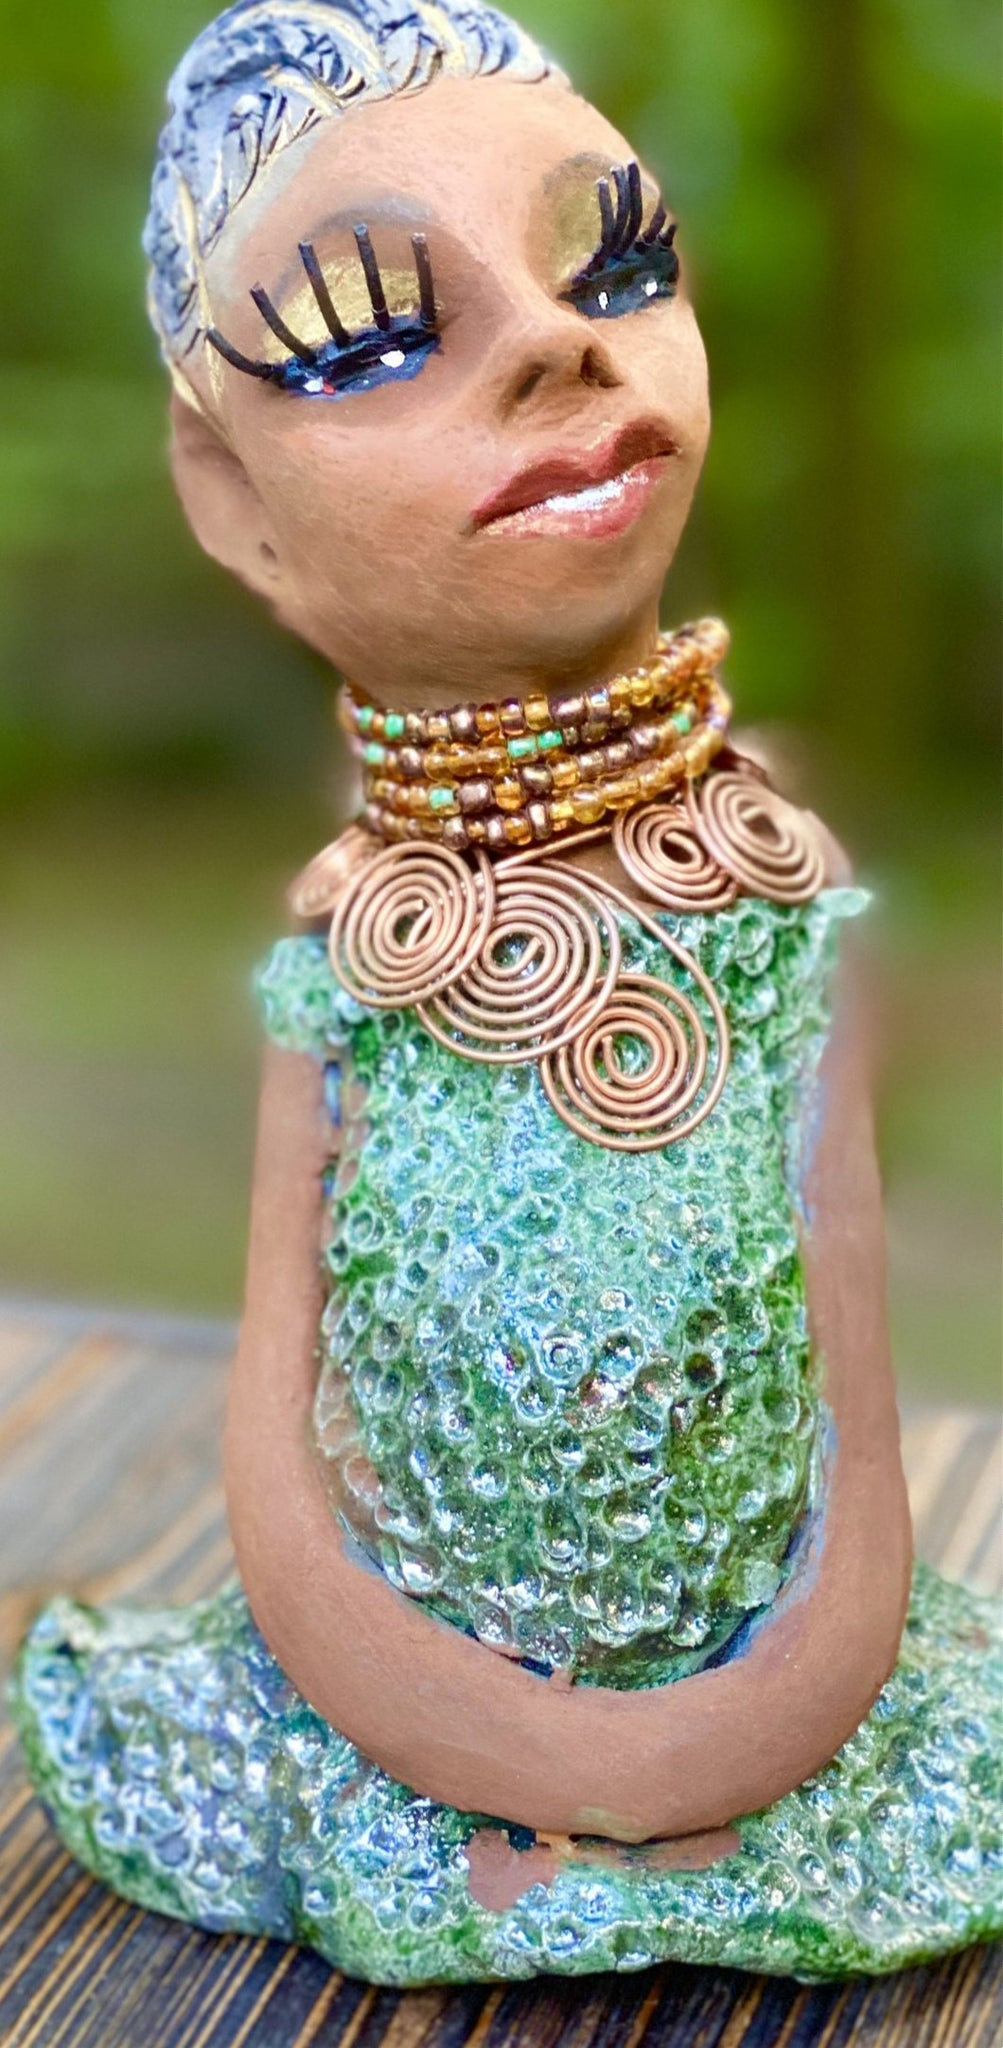 "Meet  Katherine! Katherine stands 9"" x 6"" x 5"" and weighs 1.11 lbs. She has a lovely honey brown complexion with reddish brown lips. She has a braided hairstyle.  Katherine  has a colorful metallic antique copper glazed dress. She wears a spiral copper wire necklaces on top of a multicolored beaded collar. With long lashes and eyes wide opened, Katherine has hopes of finding her way  into your home."